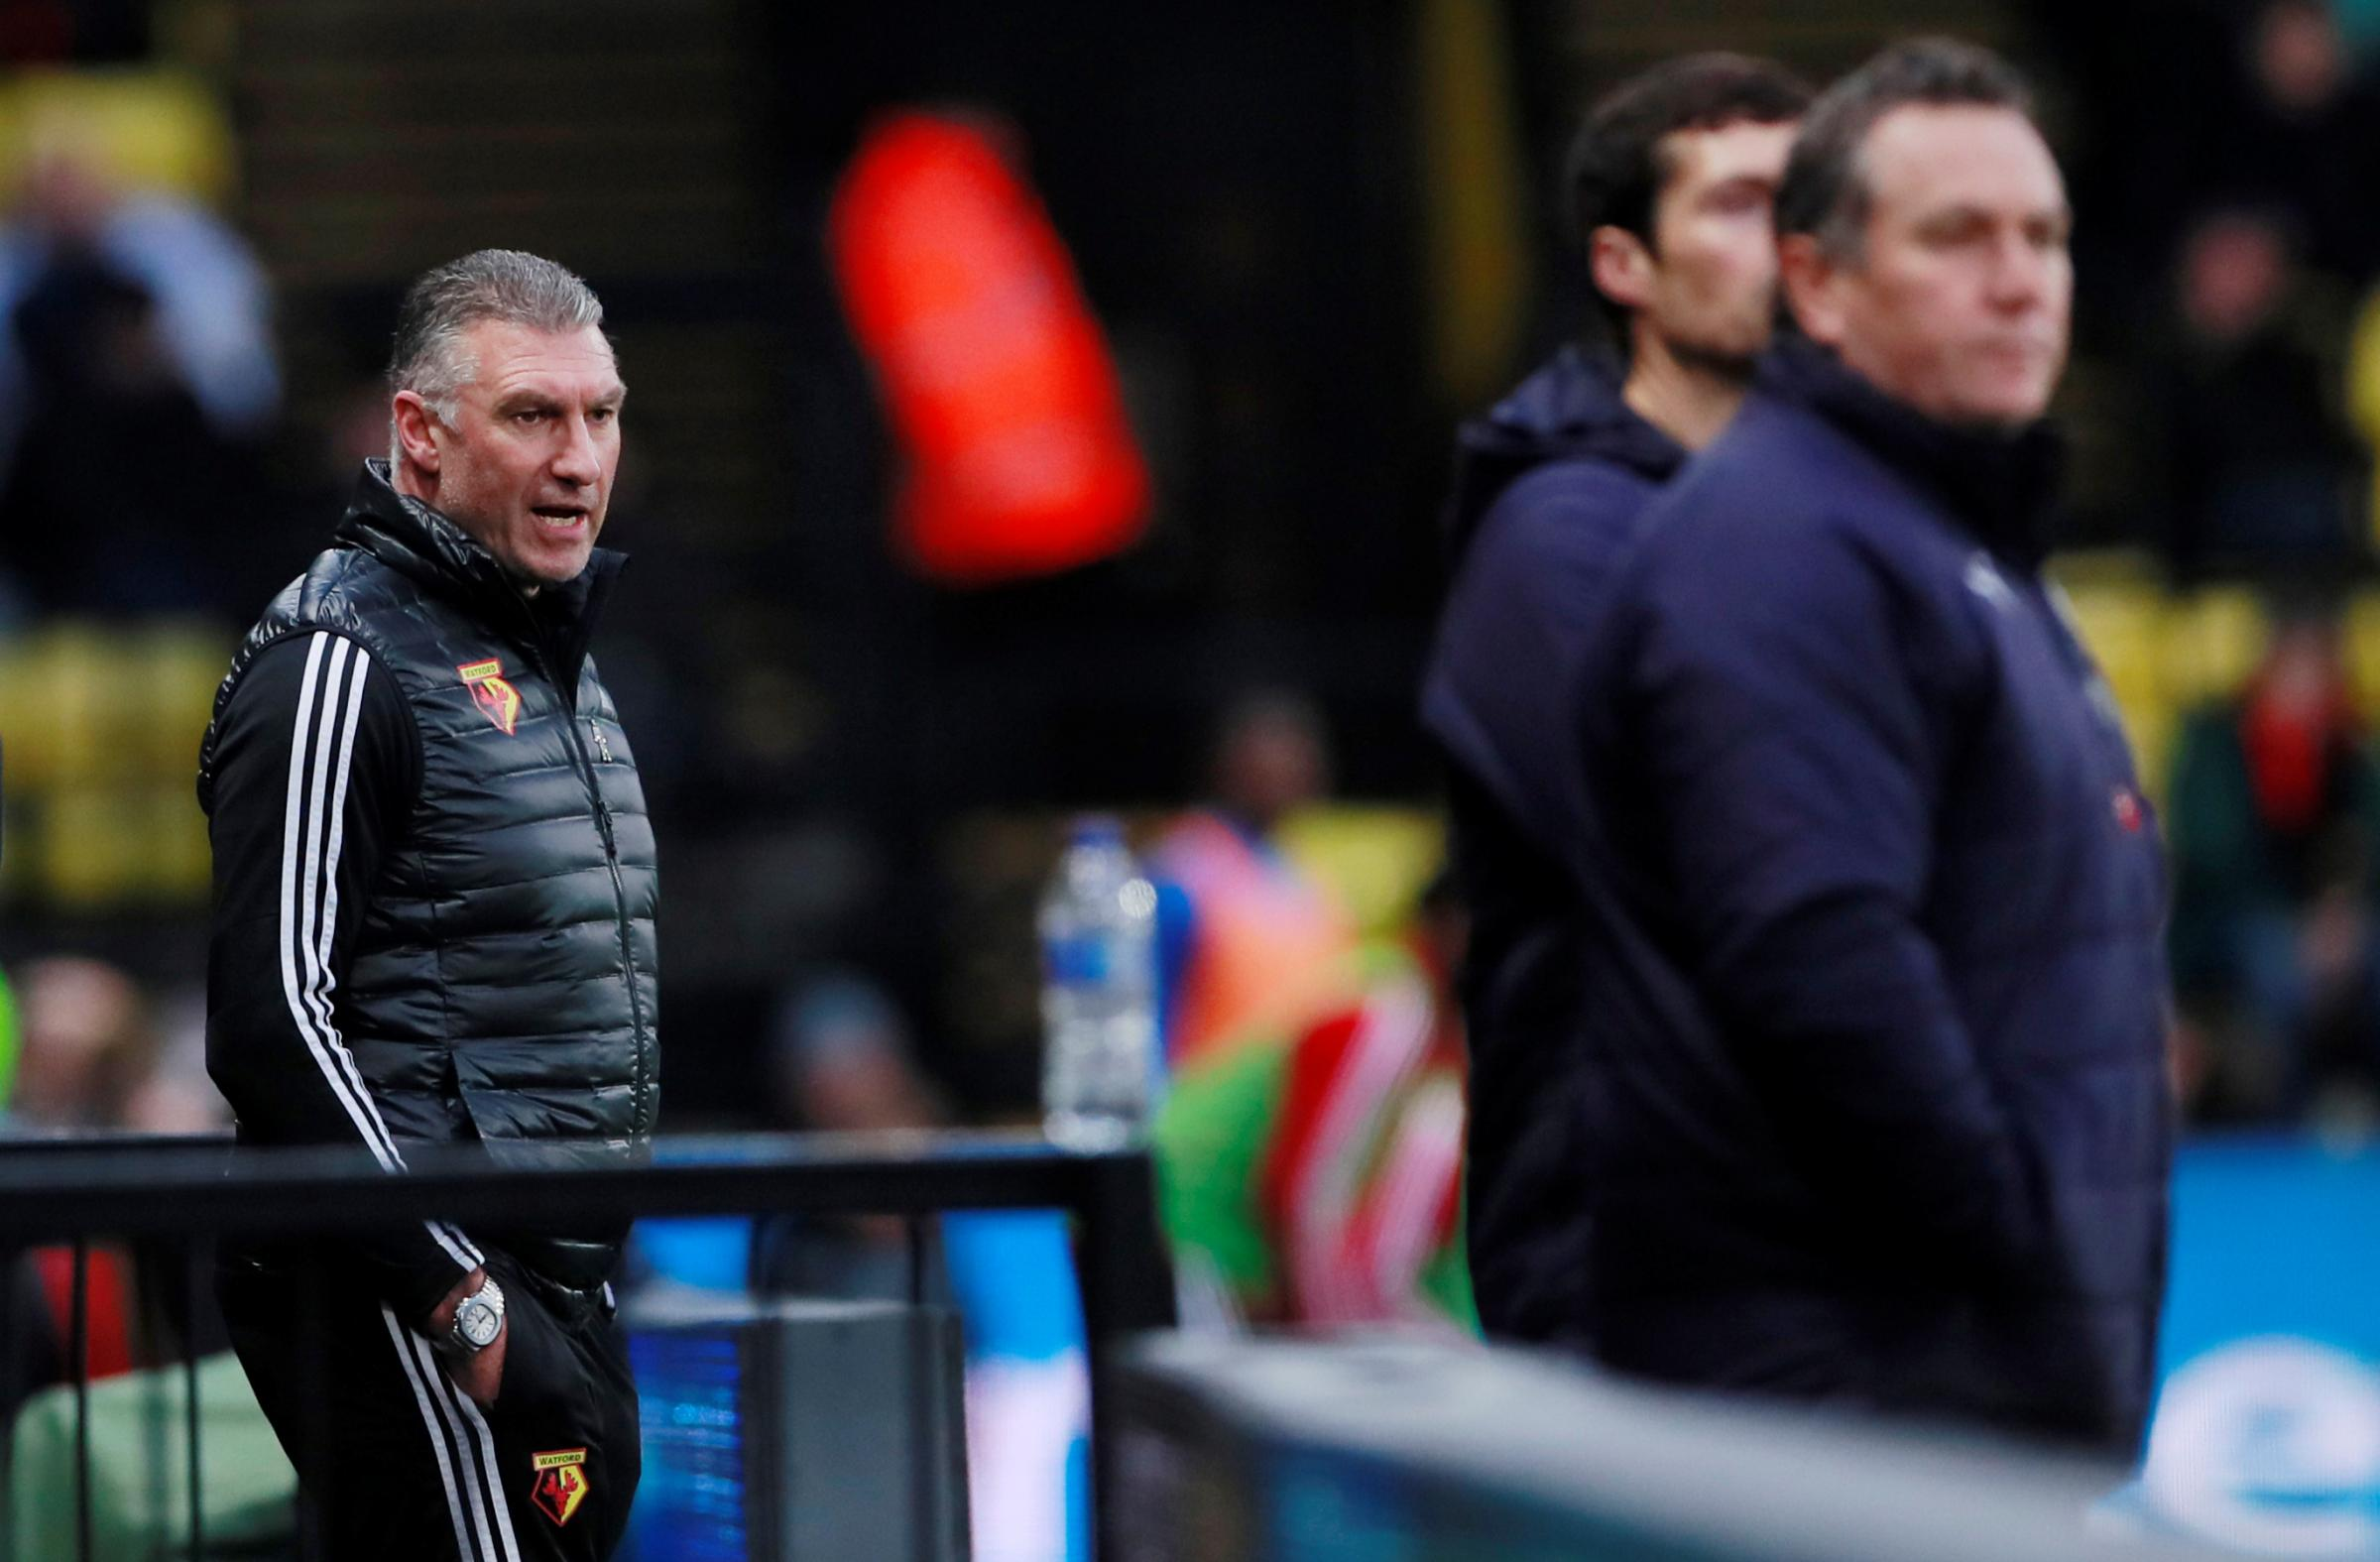 Nigel Pearson thinks expectation could help Watford beat Tranmere Rovers in the FA Cup